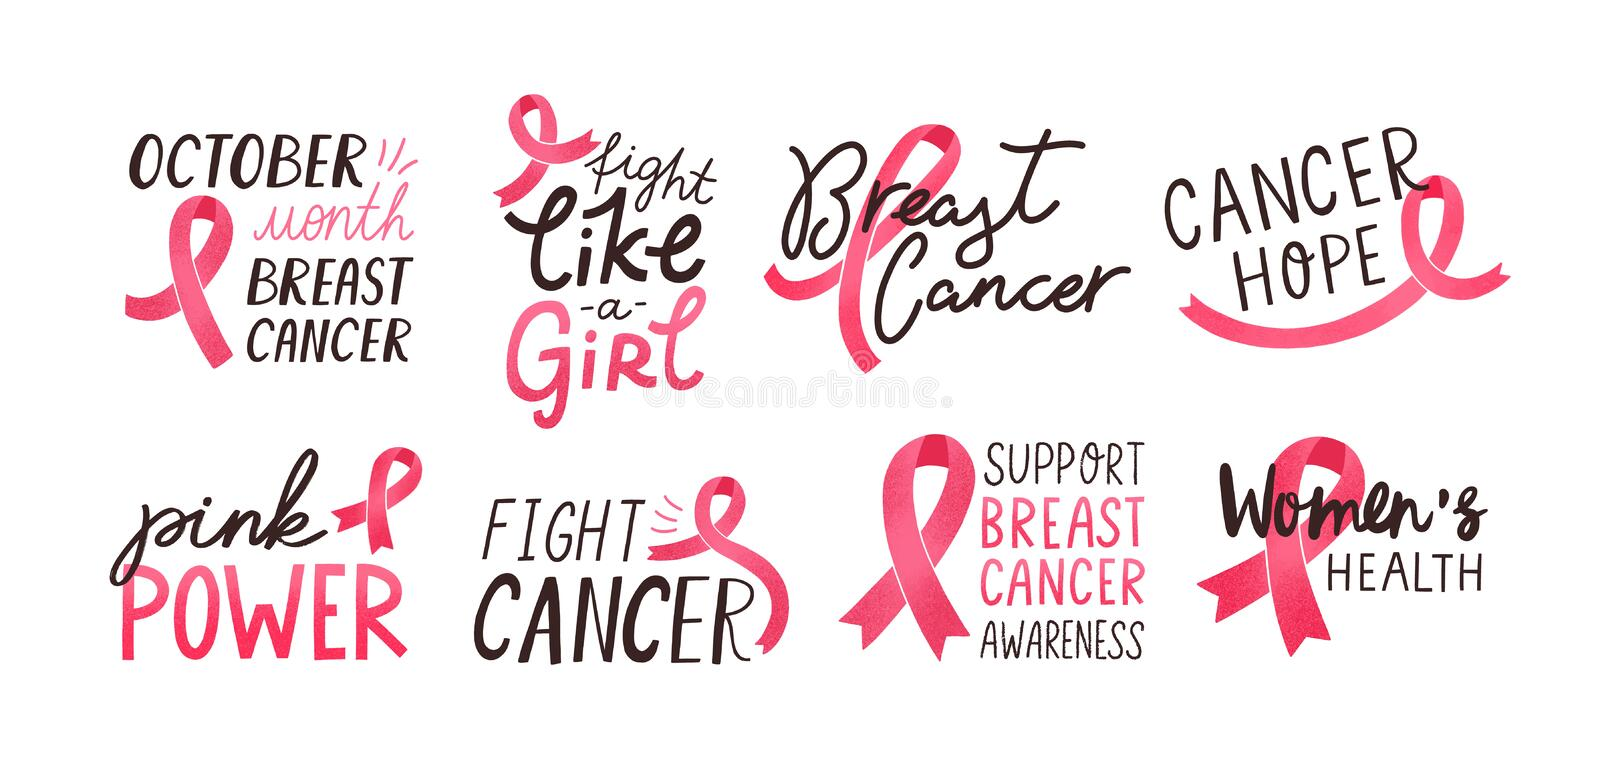 Breast cancer awareness handwritten letterings set. Women oncological disease solidarity campaign slogans pack vector illustration